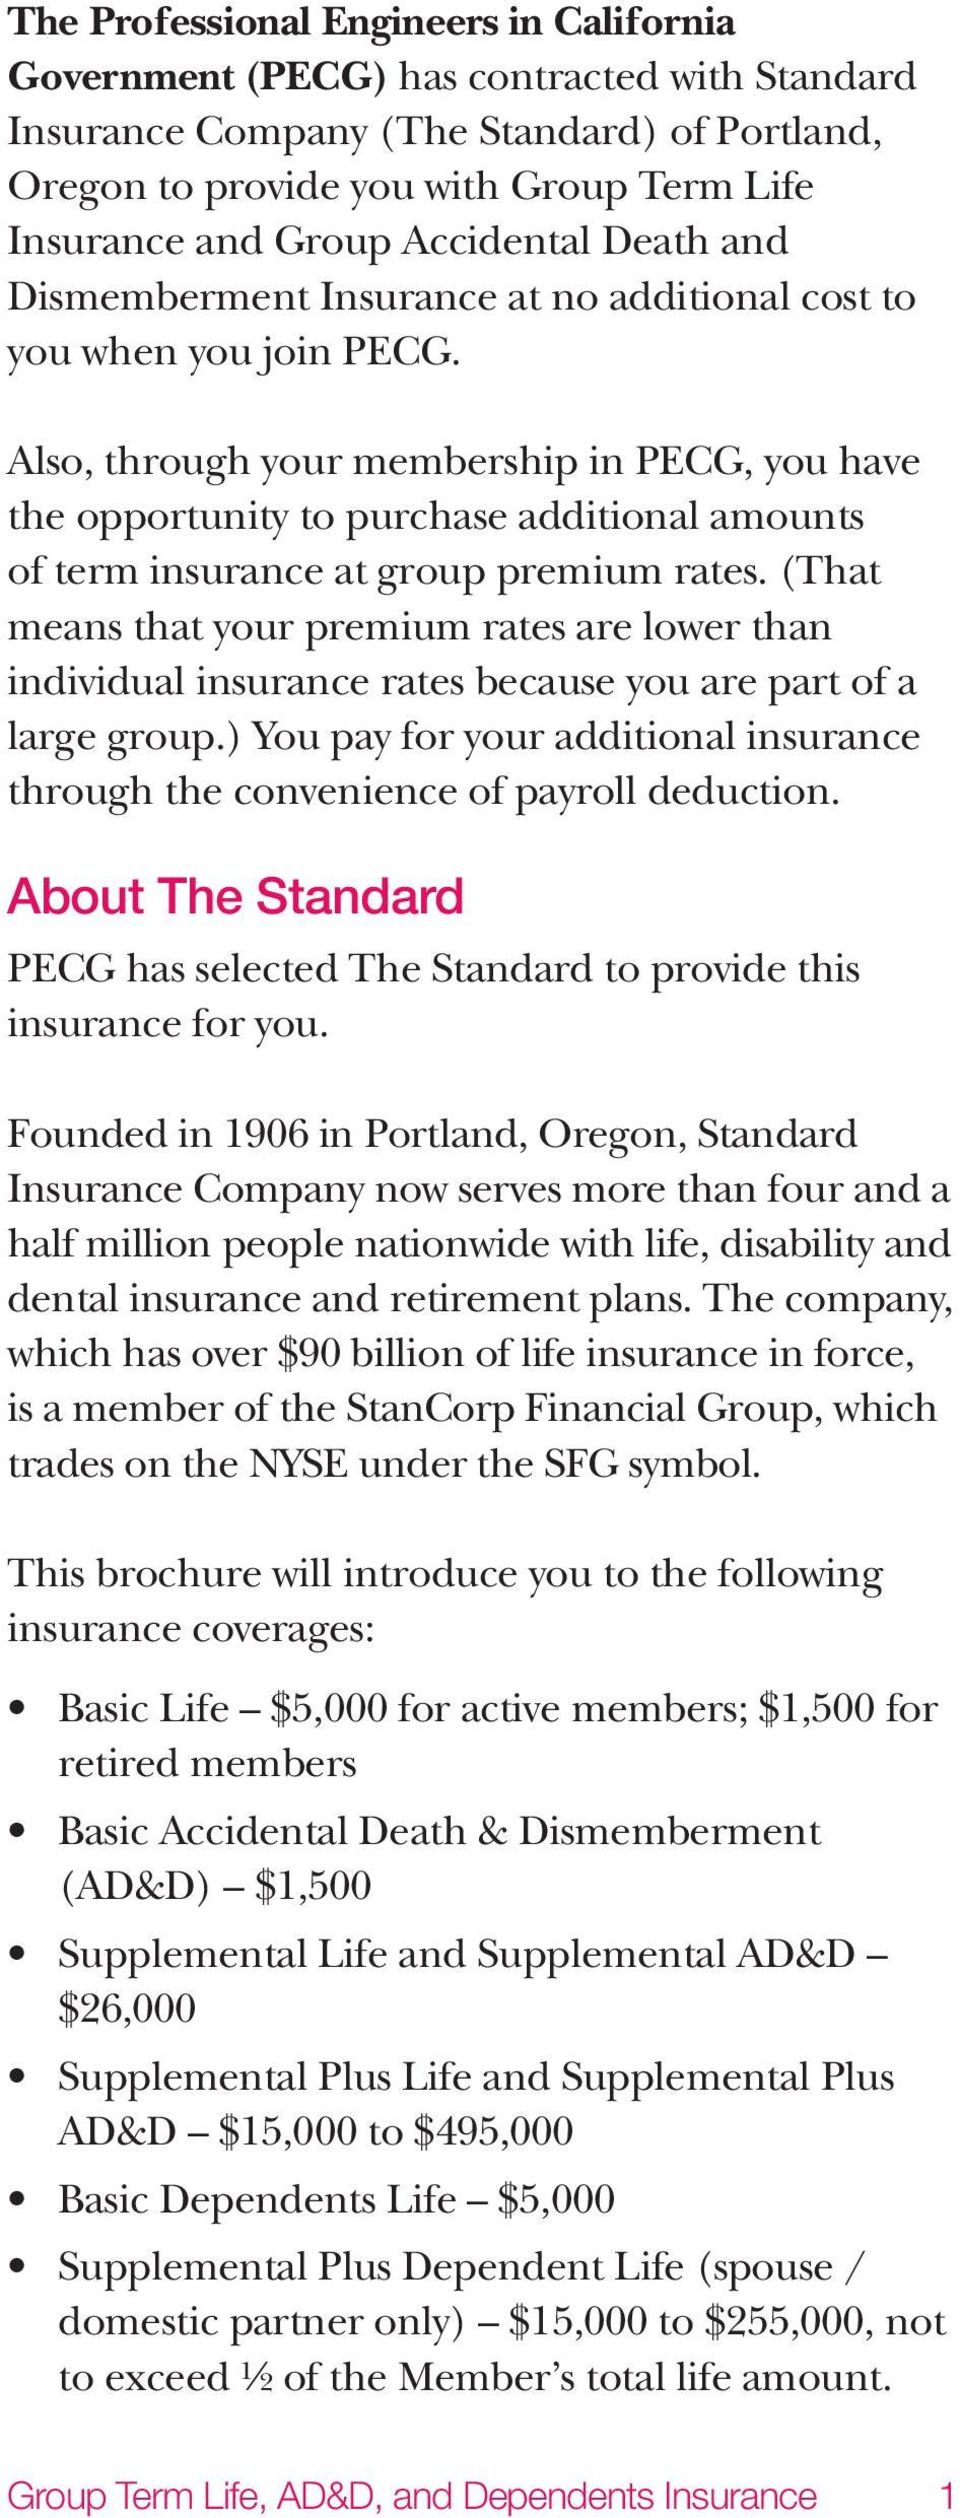 Also, through your membership in PECG, you have the opportunity to purchase additional amounts of term insurance at group premium rates.